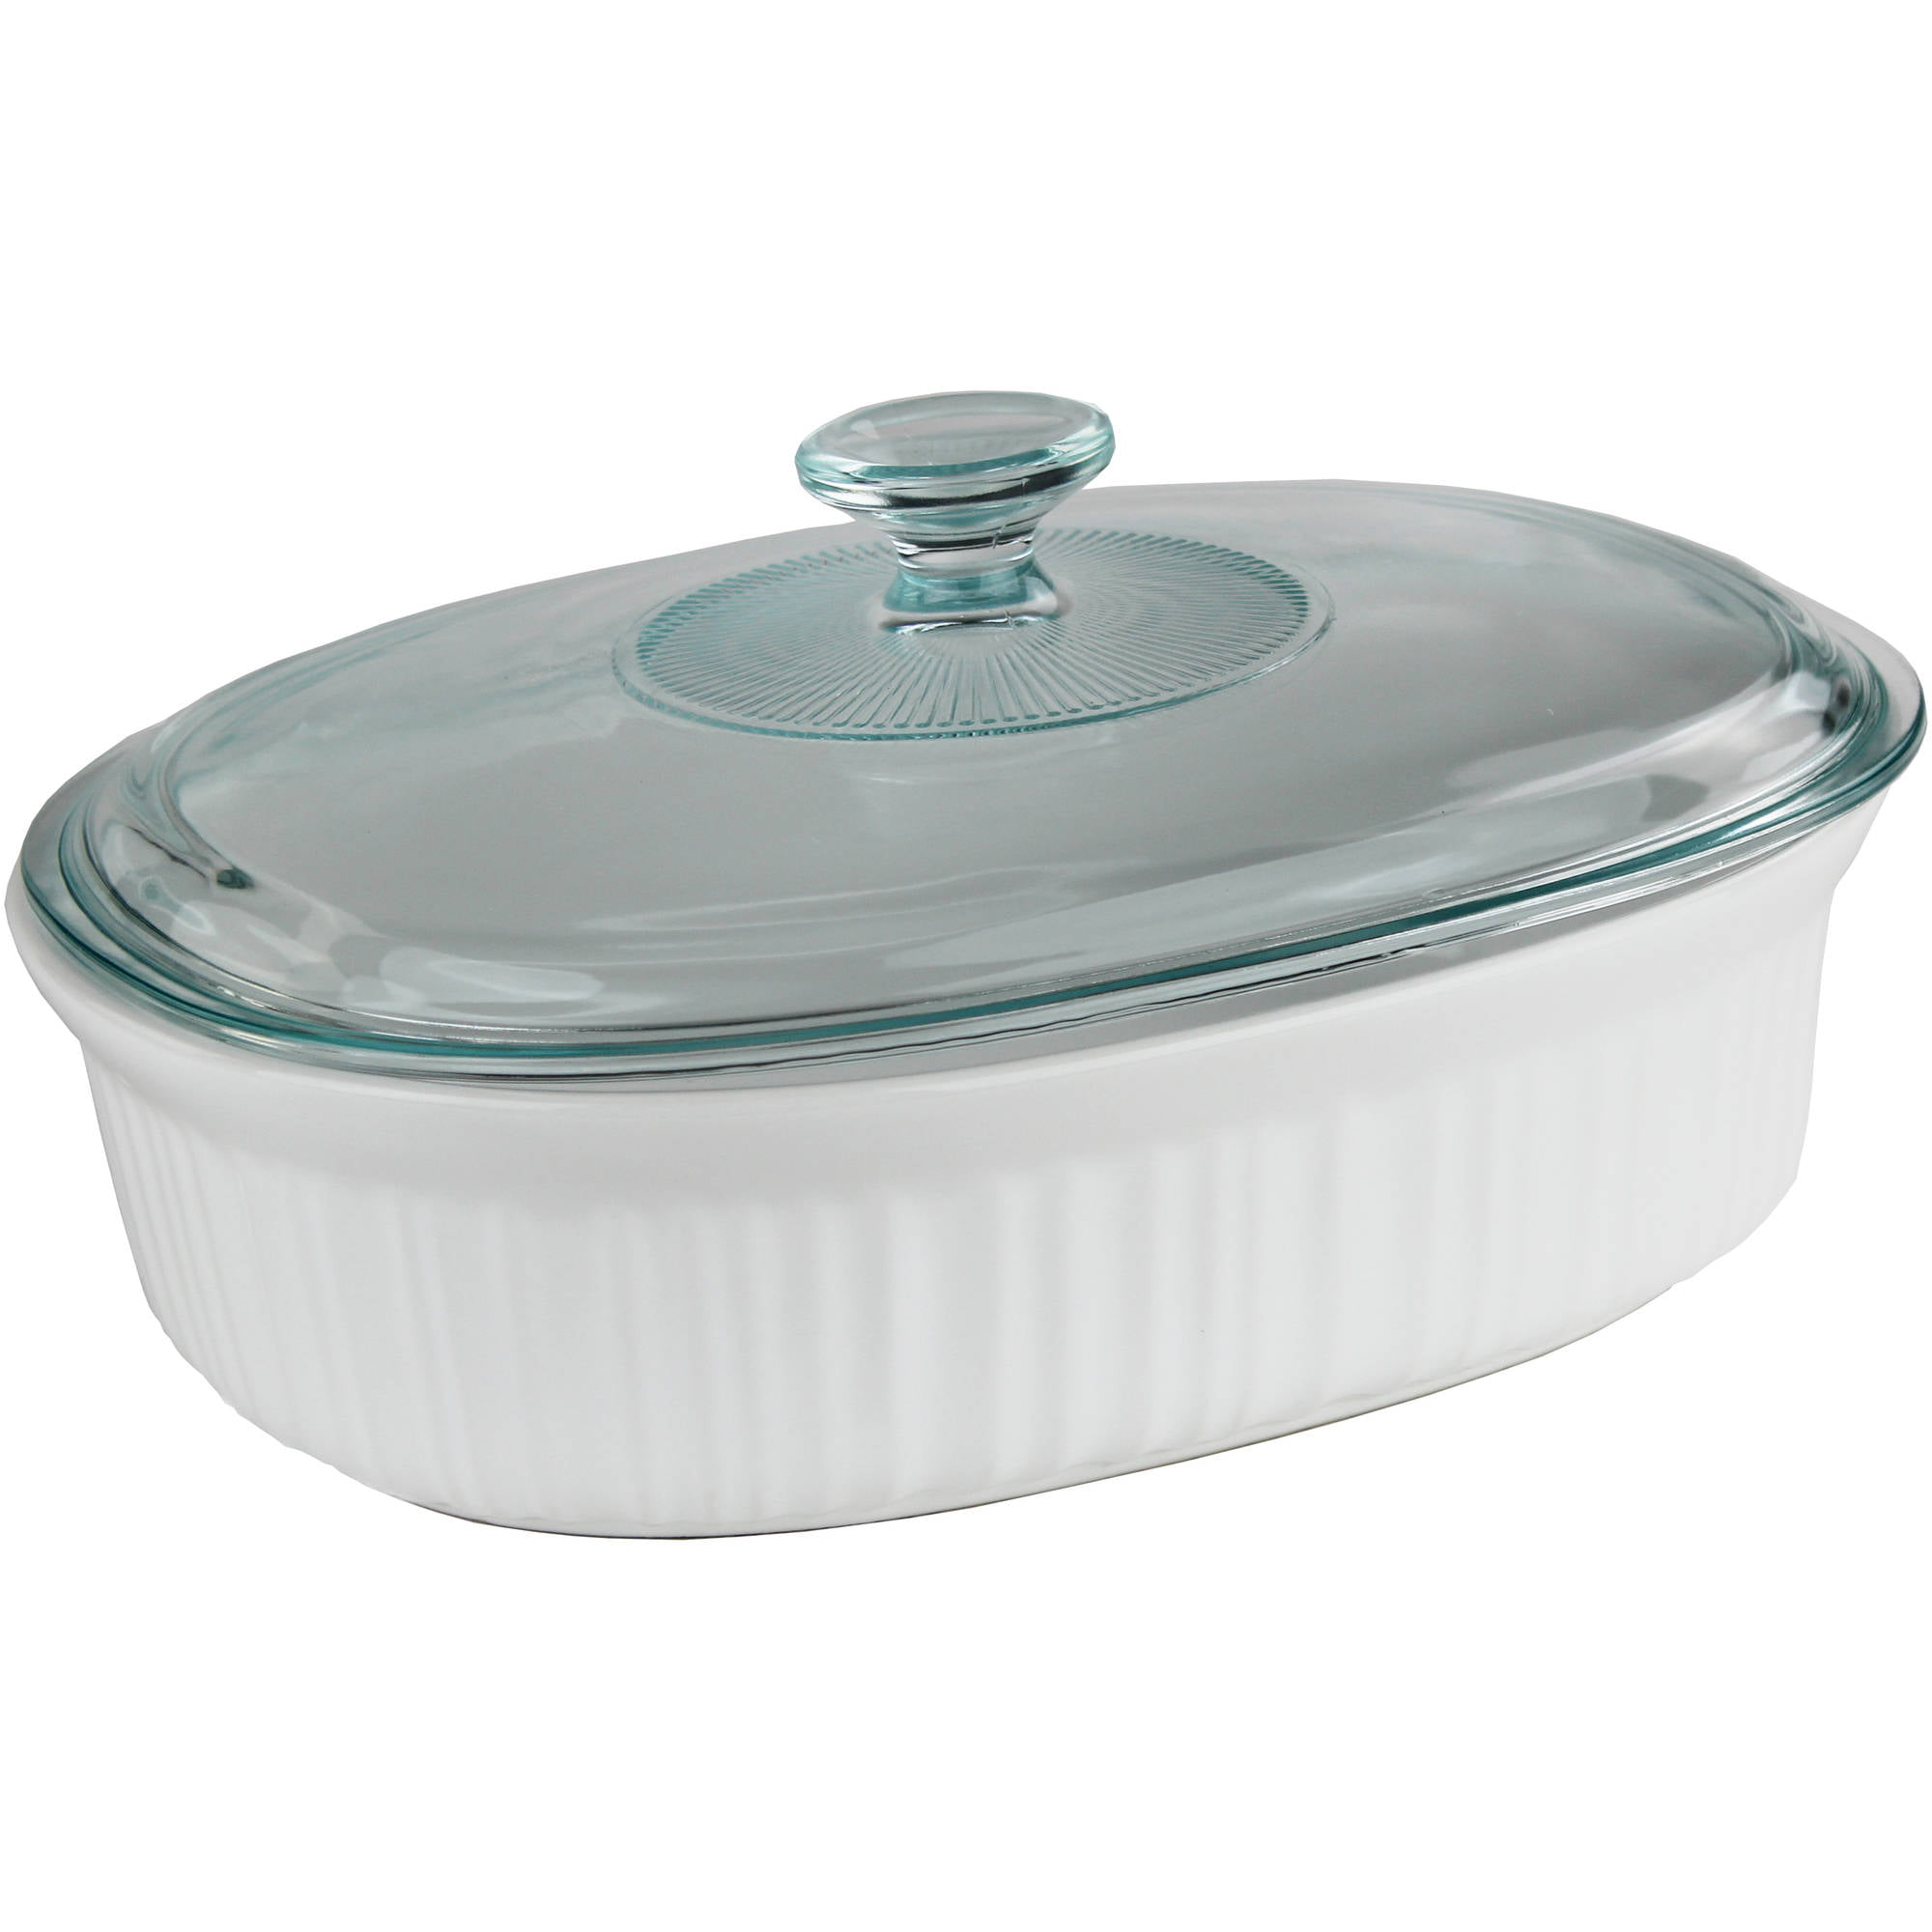 Corningware French White 6 Piece Bakeware Set Walmart Com